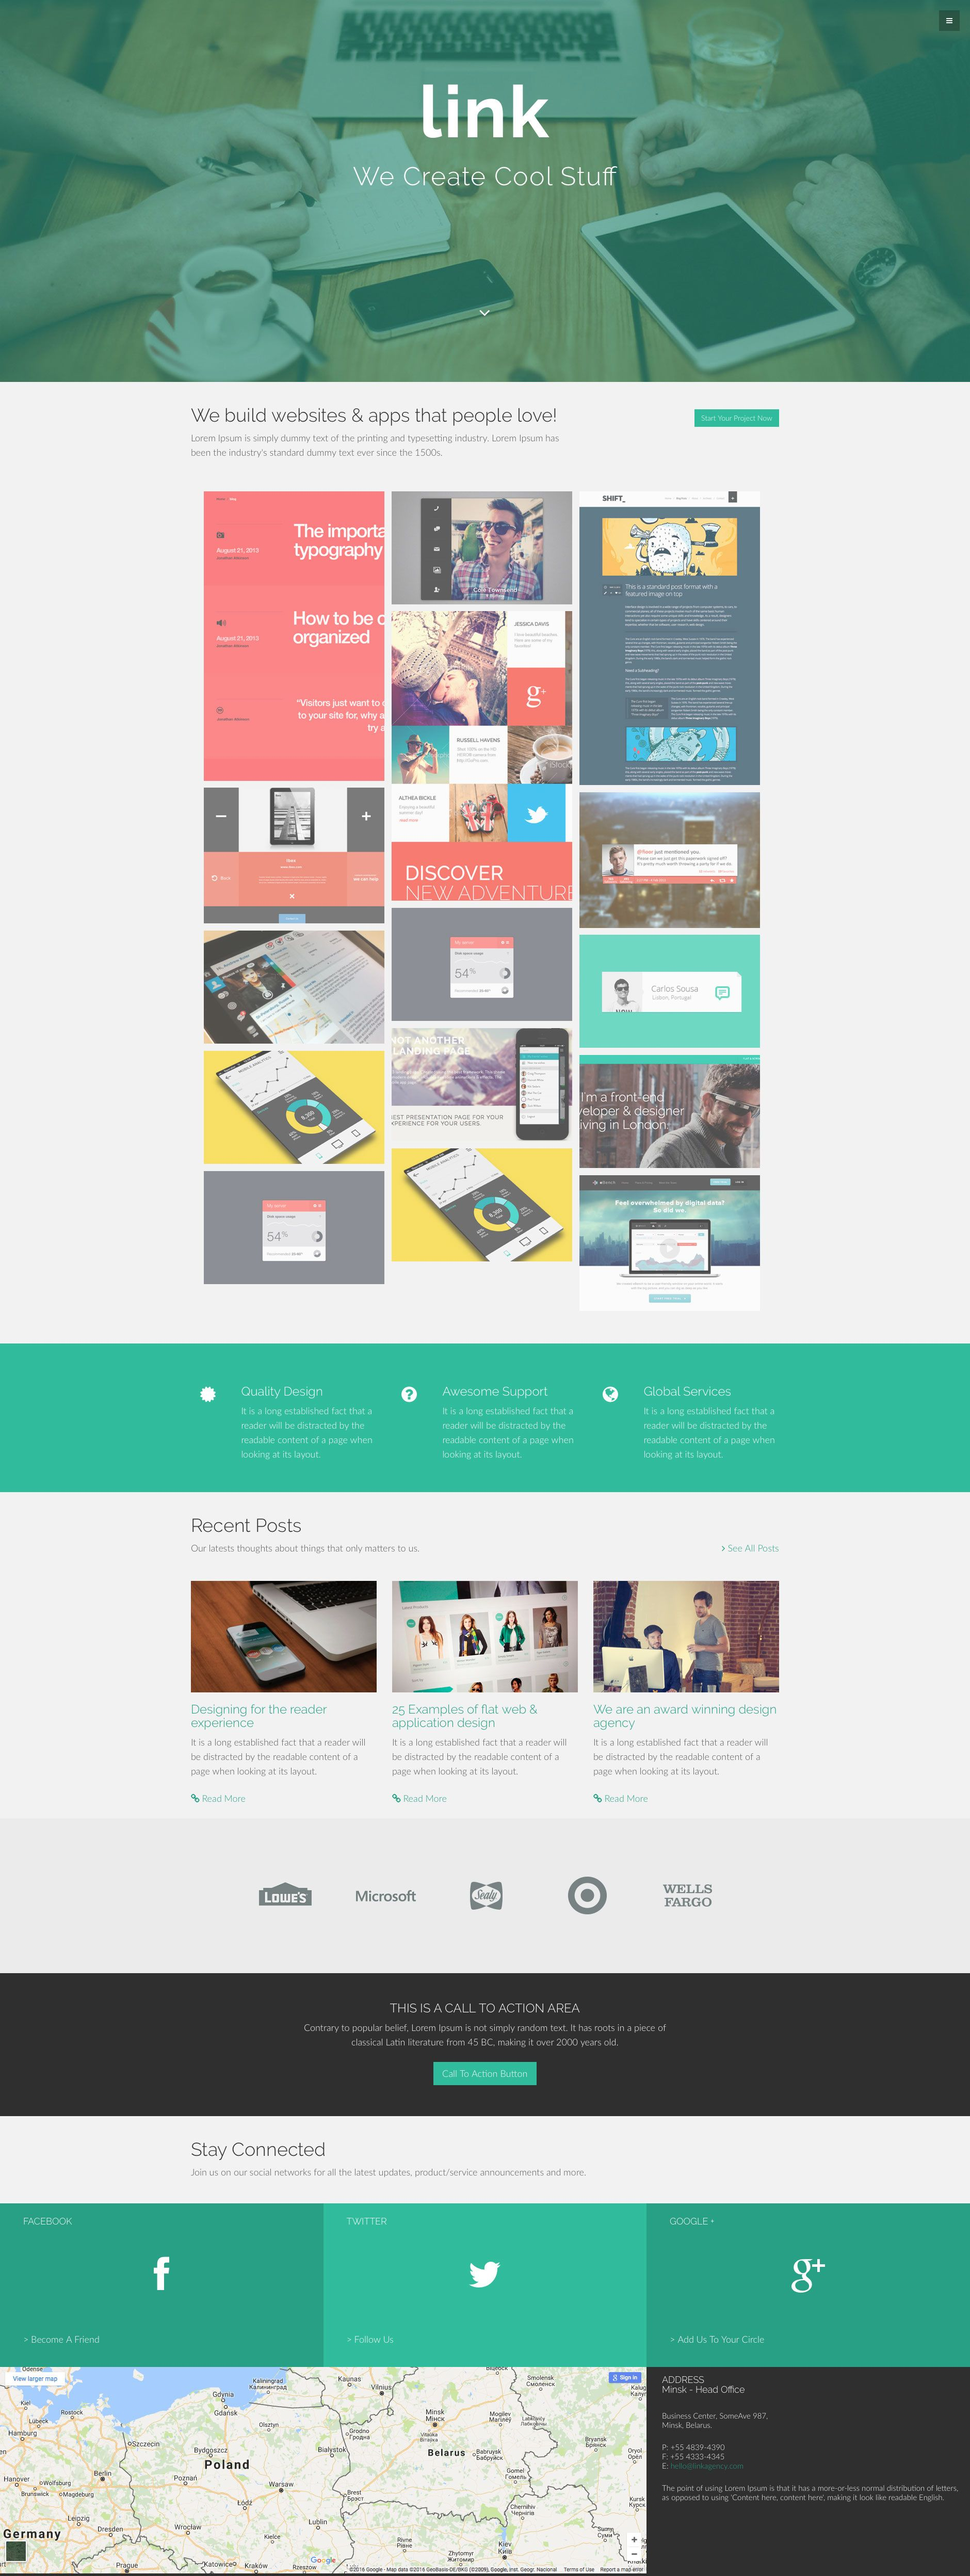 Link is a free responsive HTML5 template built on the popular ...